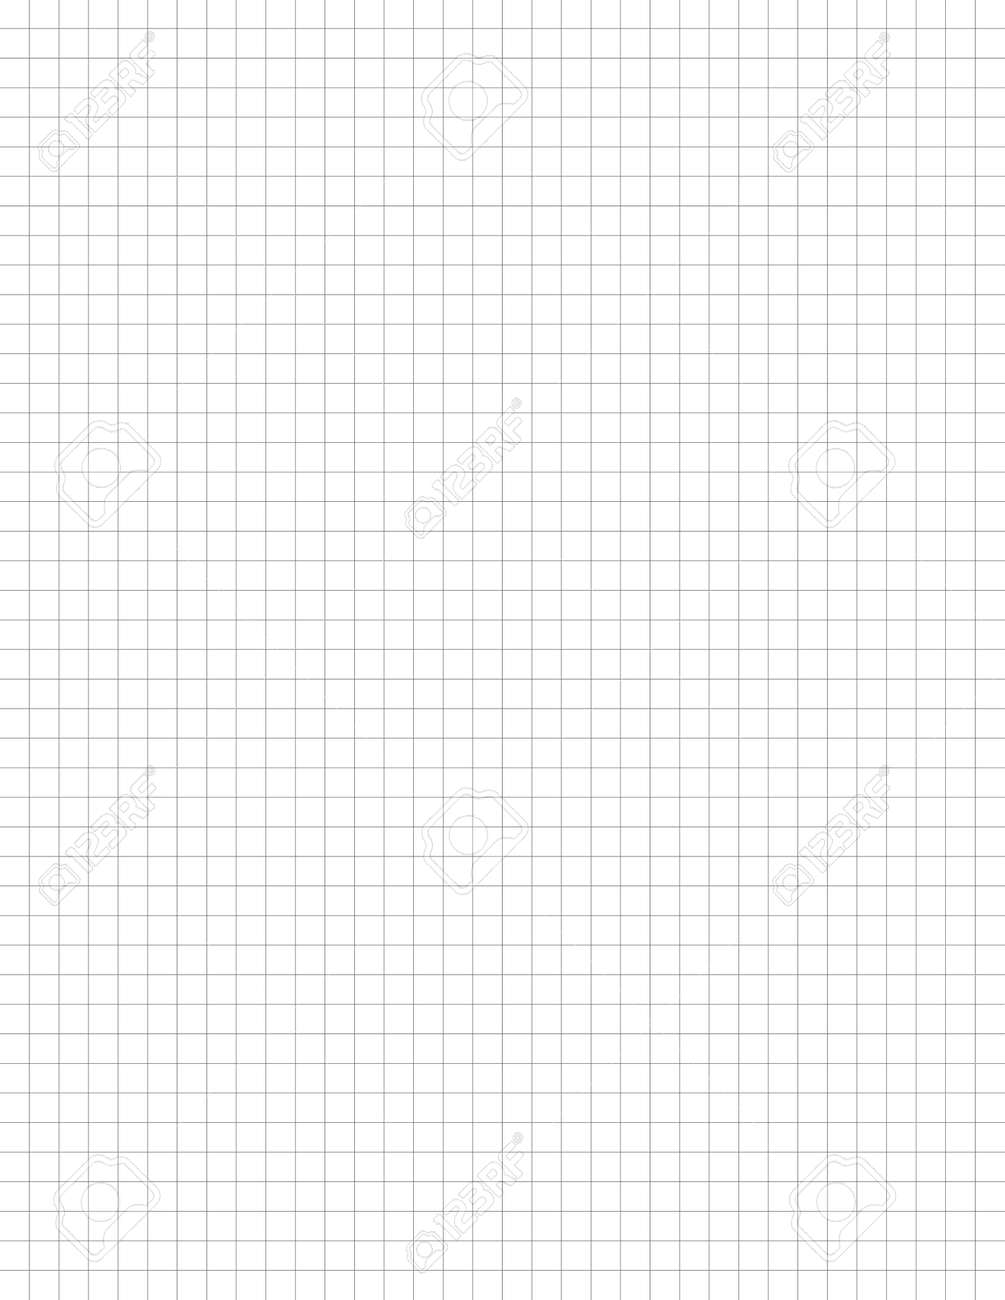 GRAPH 4x4 per inch. Graph Paper Notebook. Quad Ruled. Grid Paper for Composition Notebook for School,College students, math, science, engineering. Journal , daily graph , Drawing and Graphing size 8 - 162686295